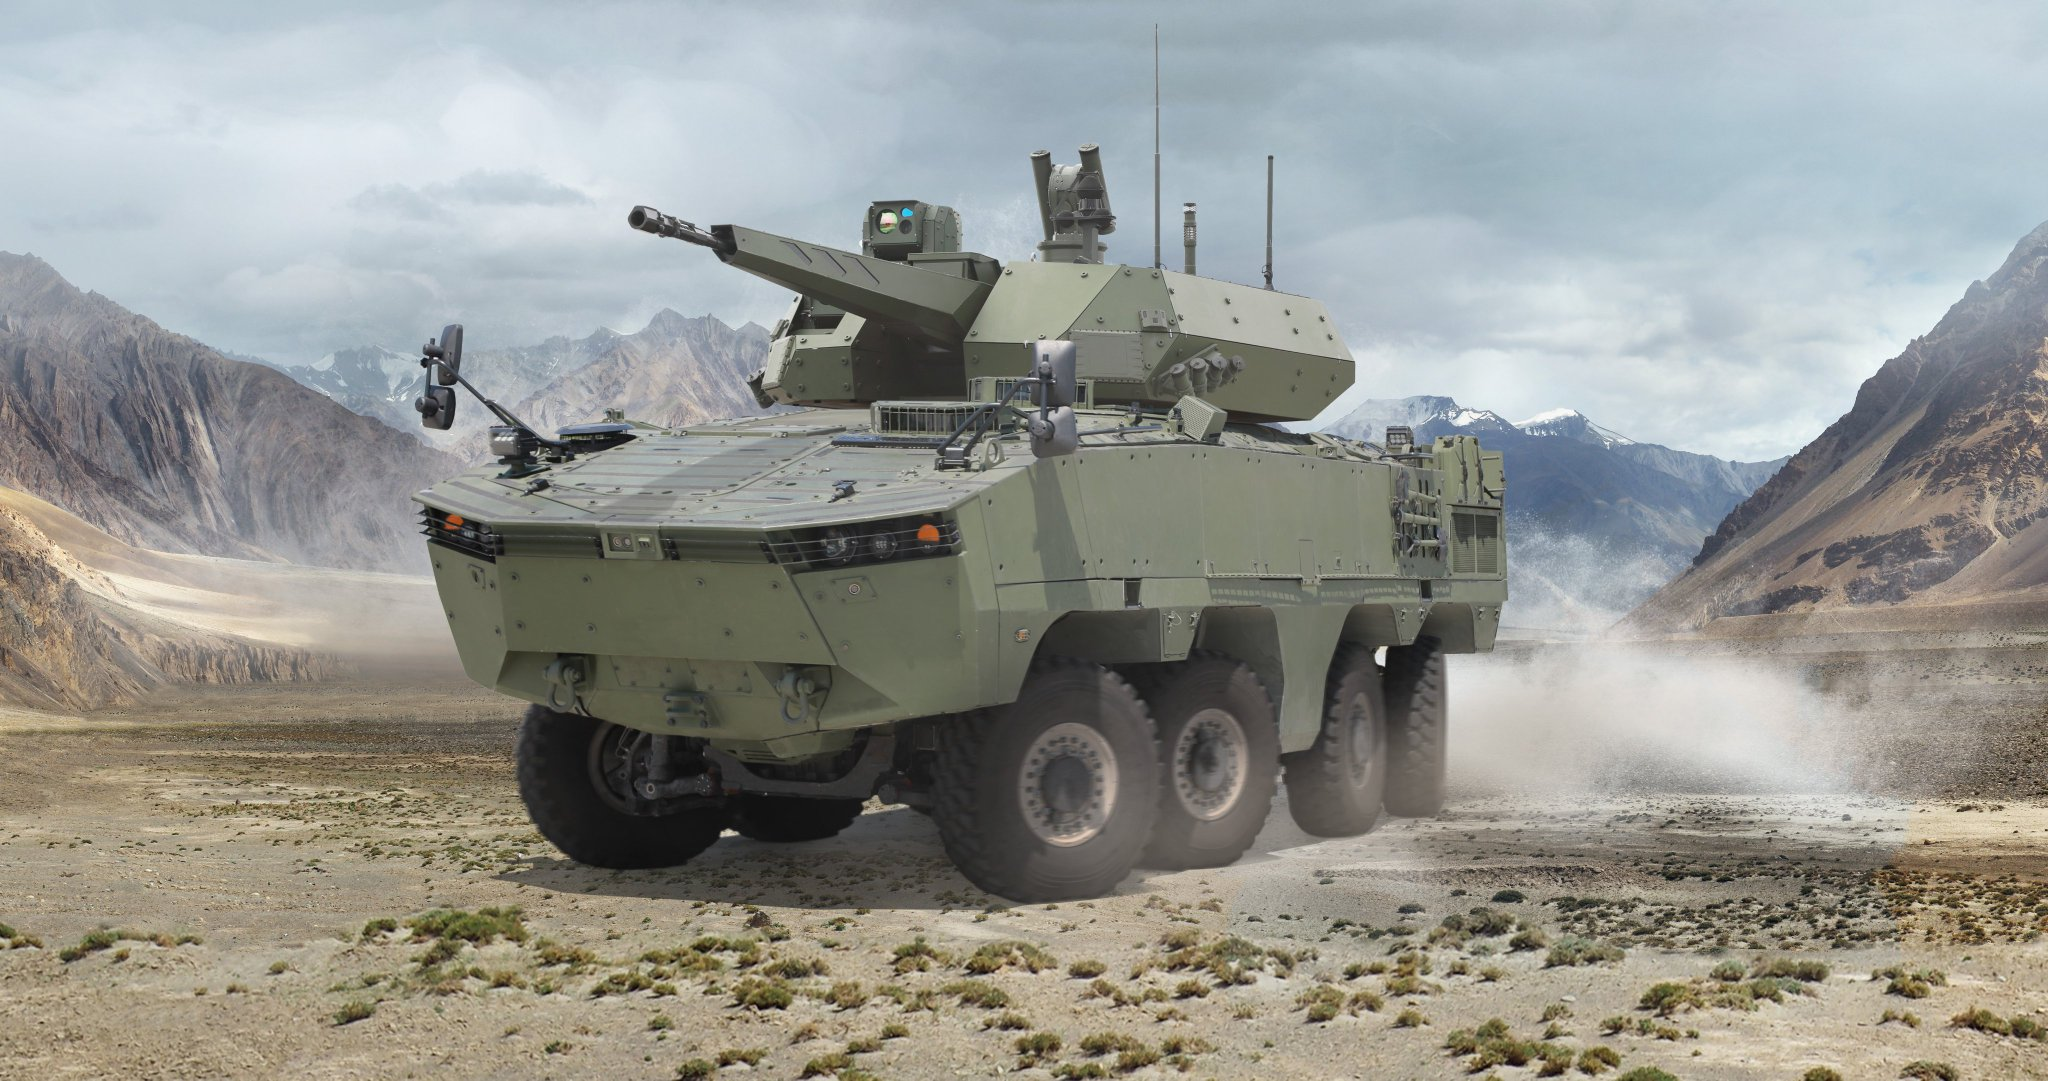 ARMA 8x8 Multi-wheeled Armored Vehicle with KORHAN turret system